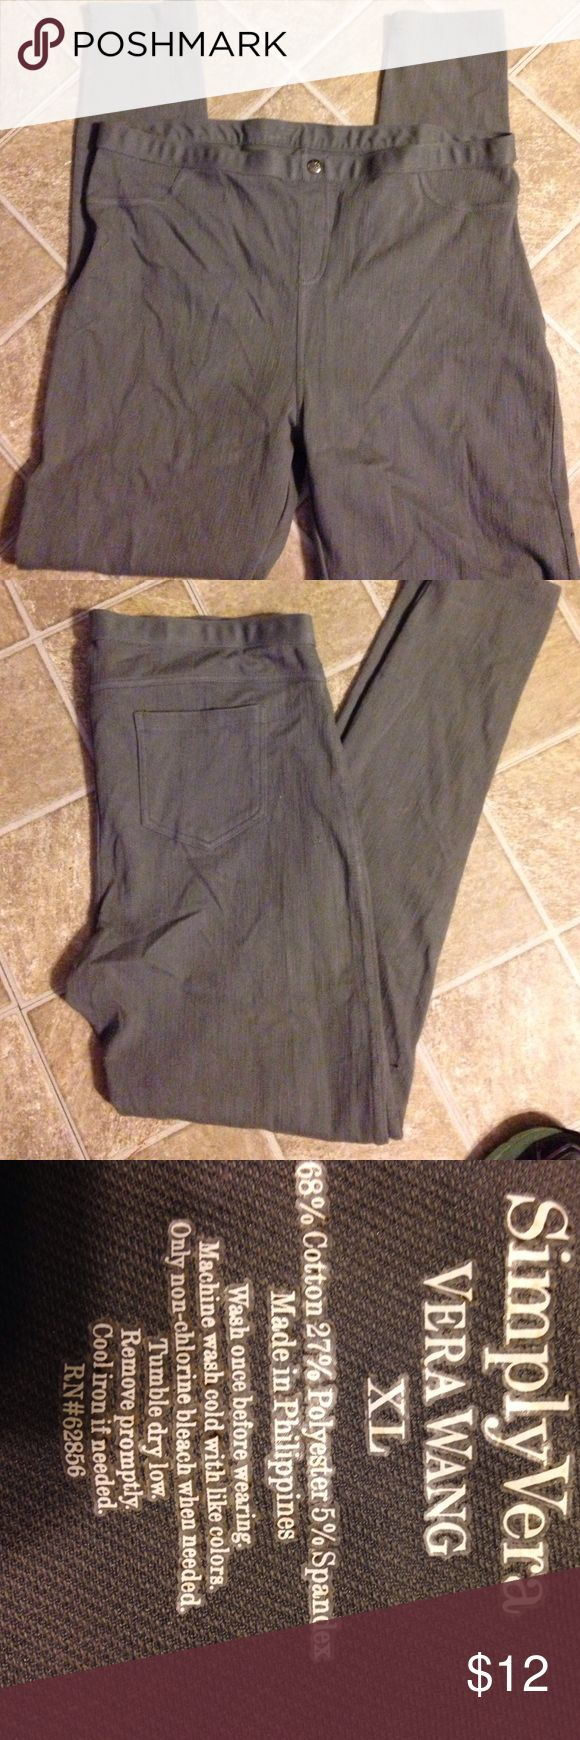 Simply Vera  Vera Wang leggings  Sz XL Simply Vera  Vera Wang leggings  Sz XL Simply Vera Vera Wang Pants Leggings